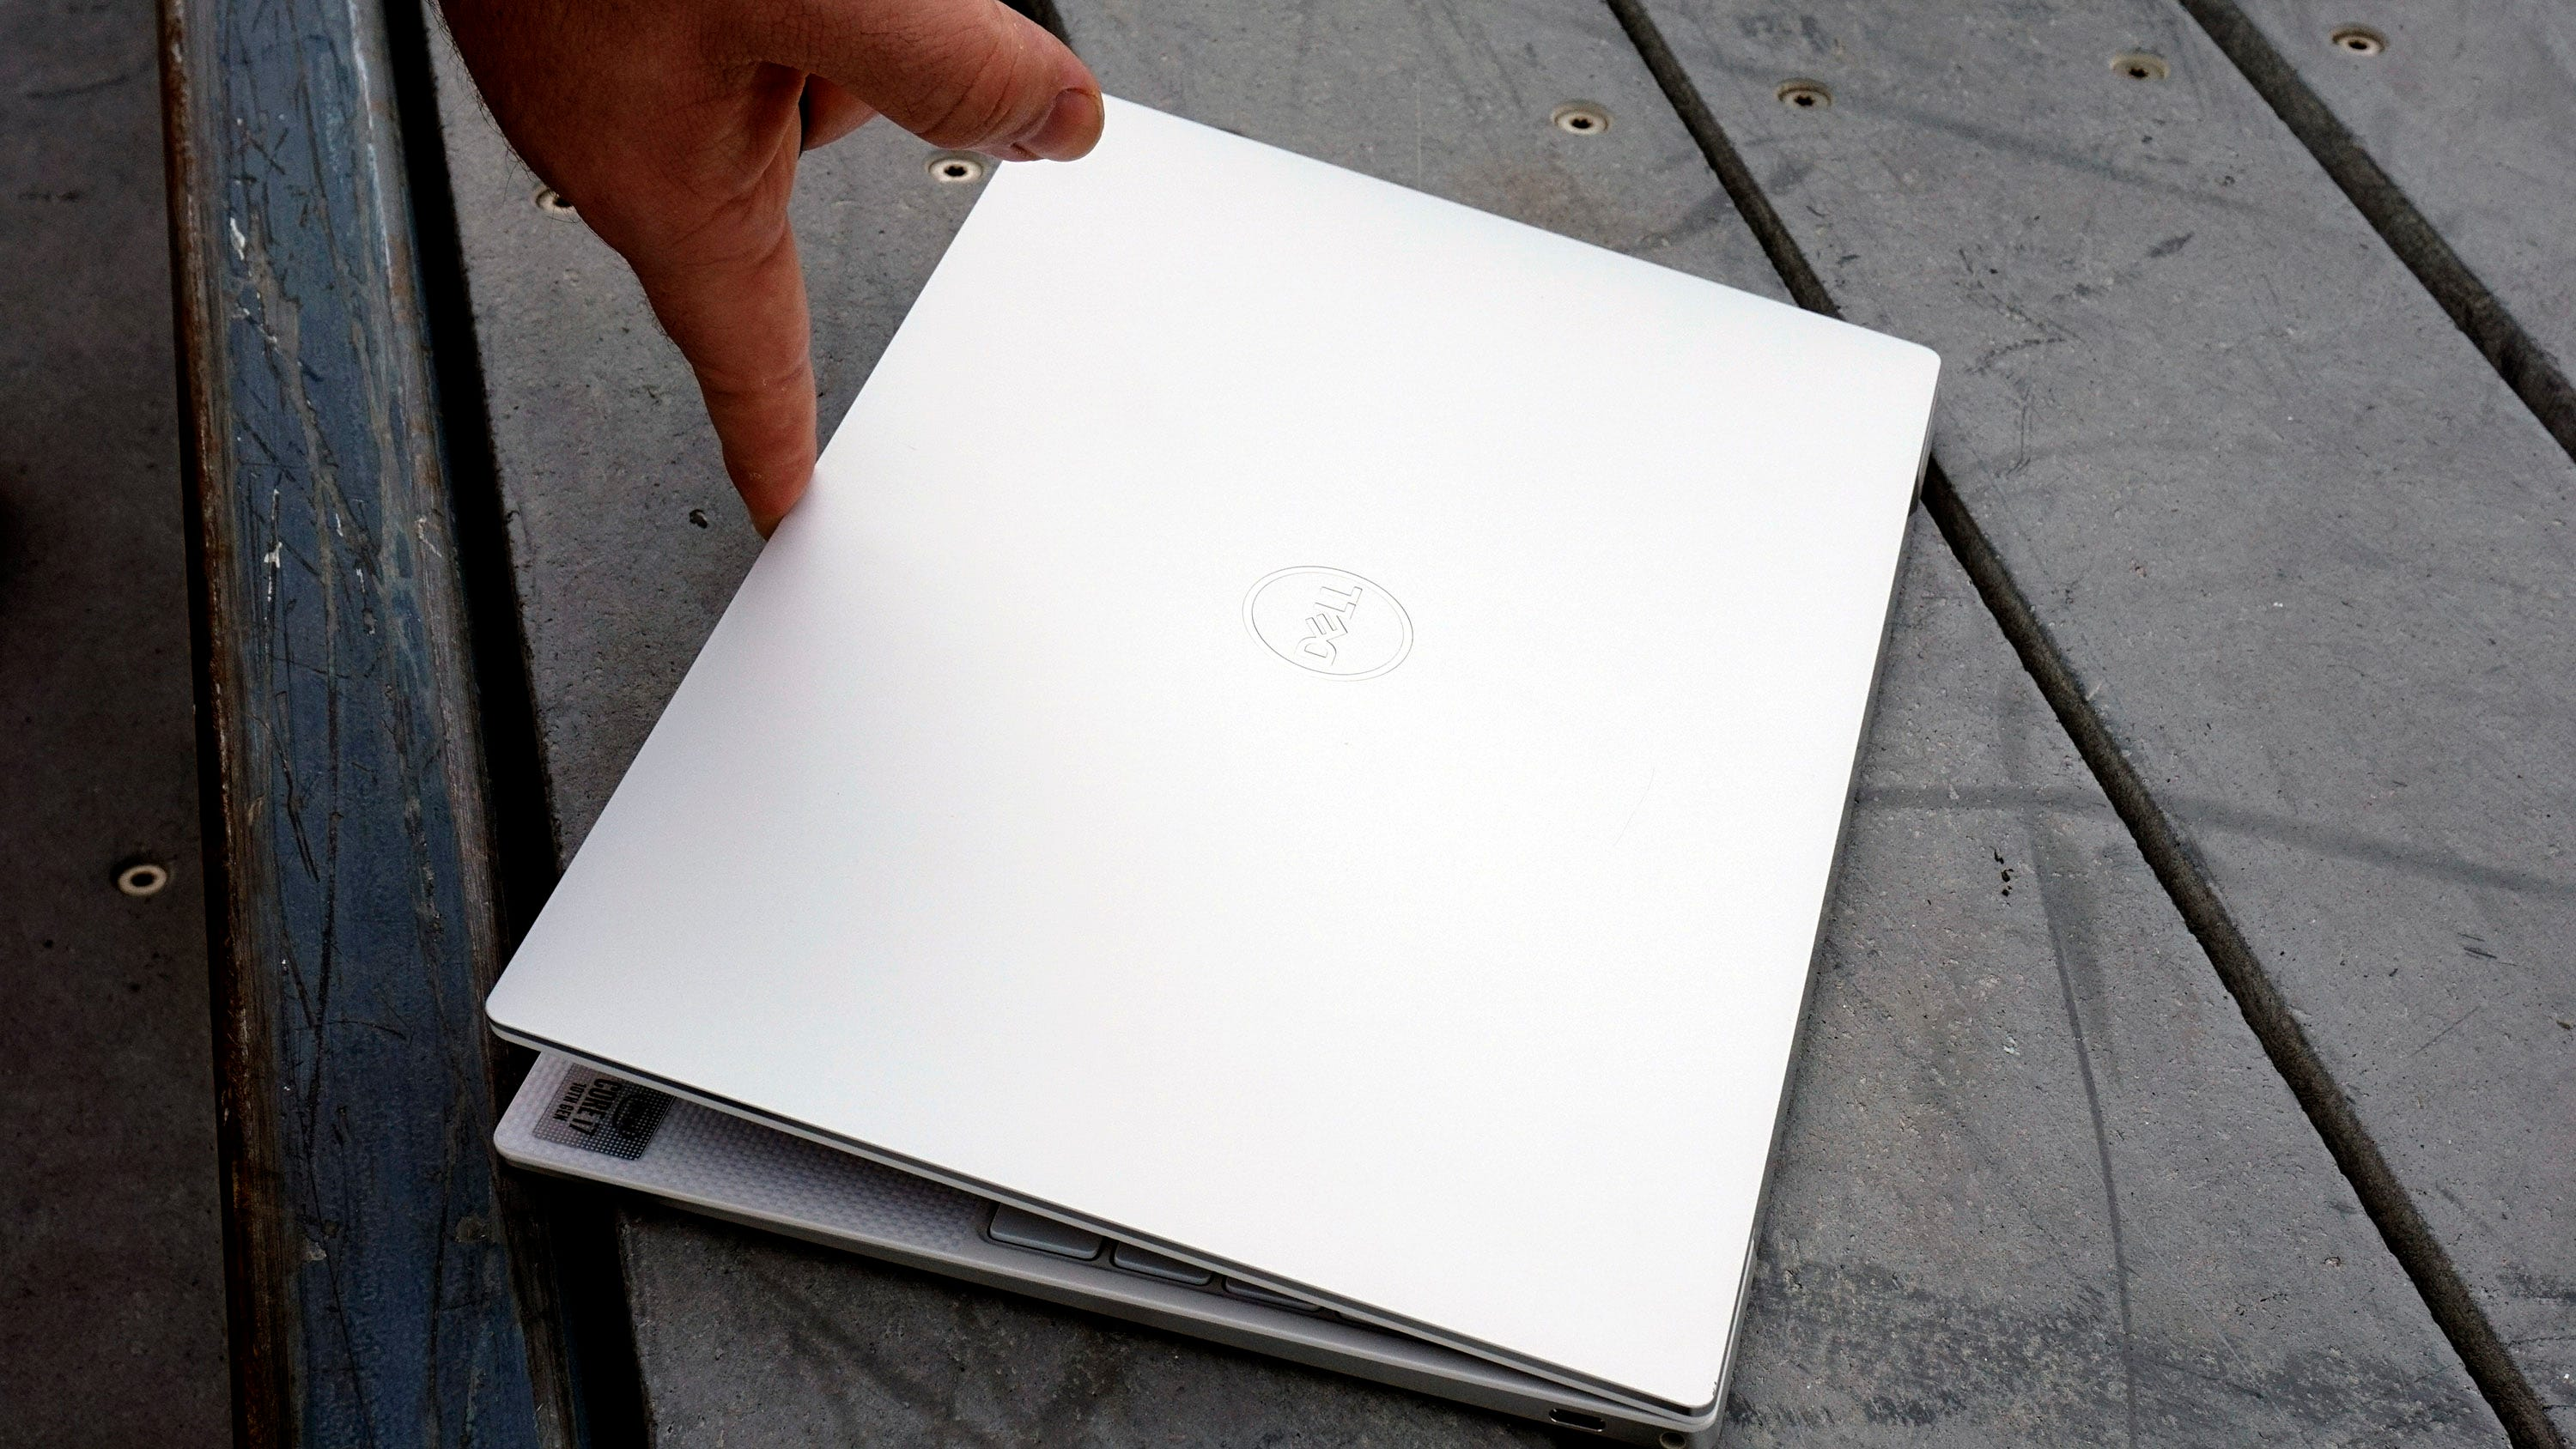 XPS 13 lid opened with one finger.